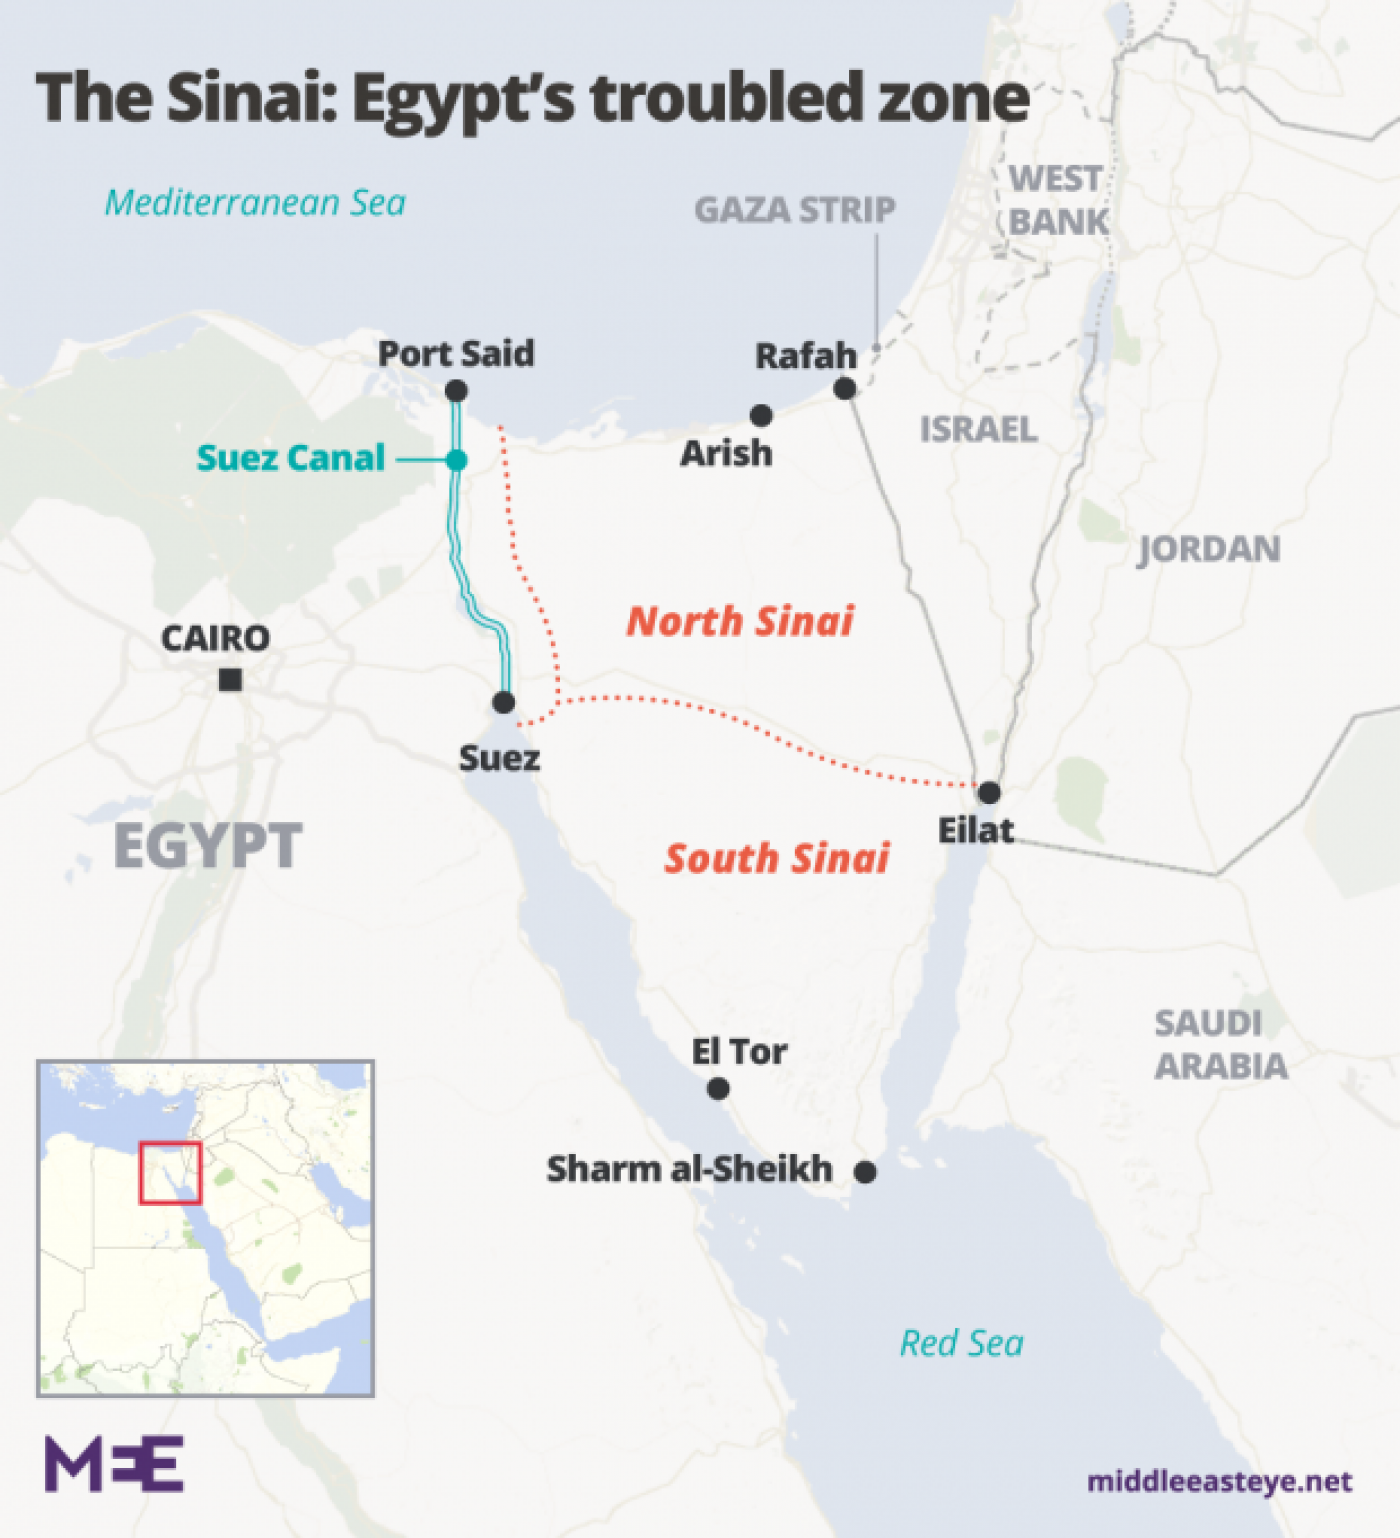 Eid turned into a funeral': Sinai attack leaves Egyptian soldiers